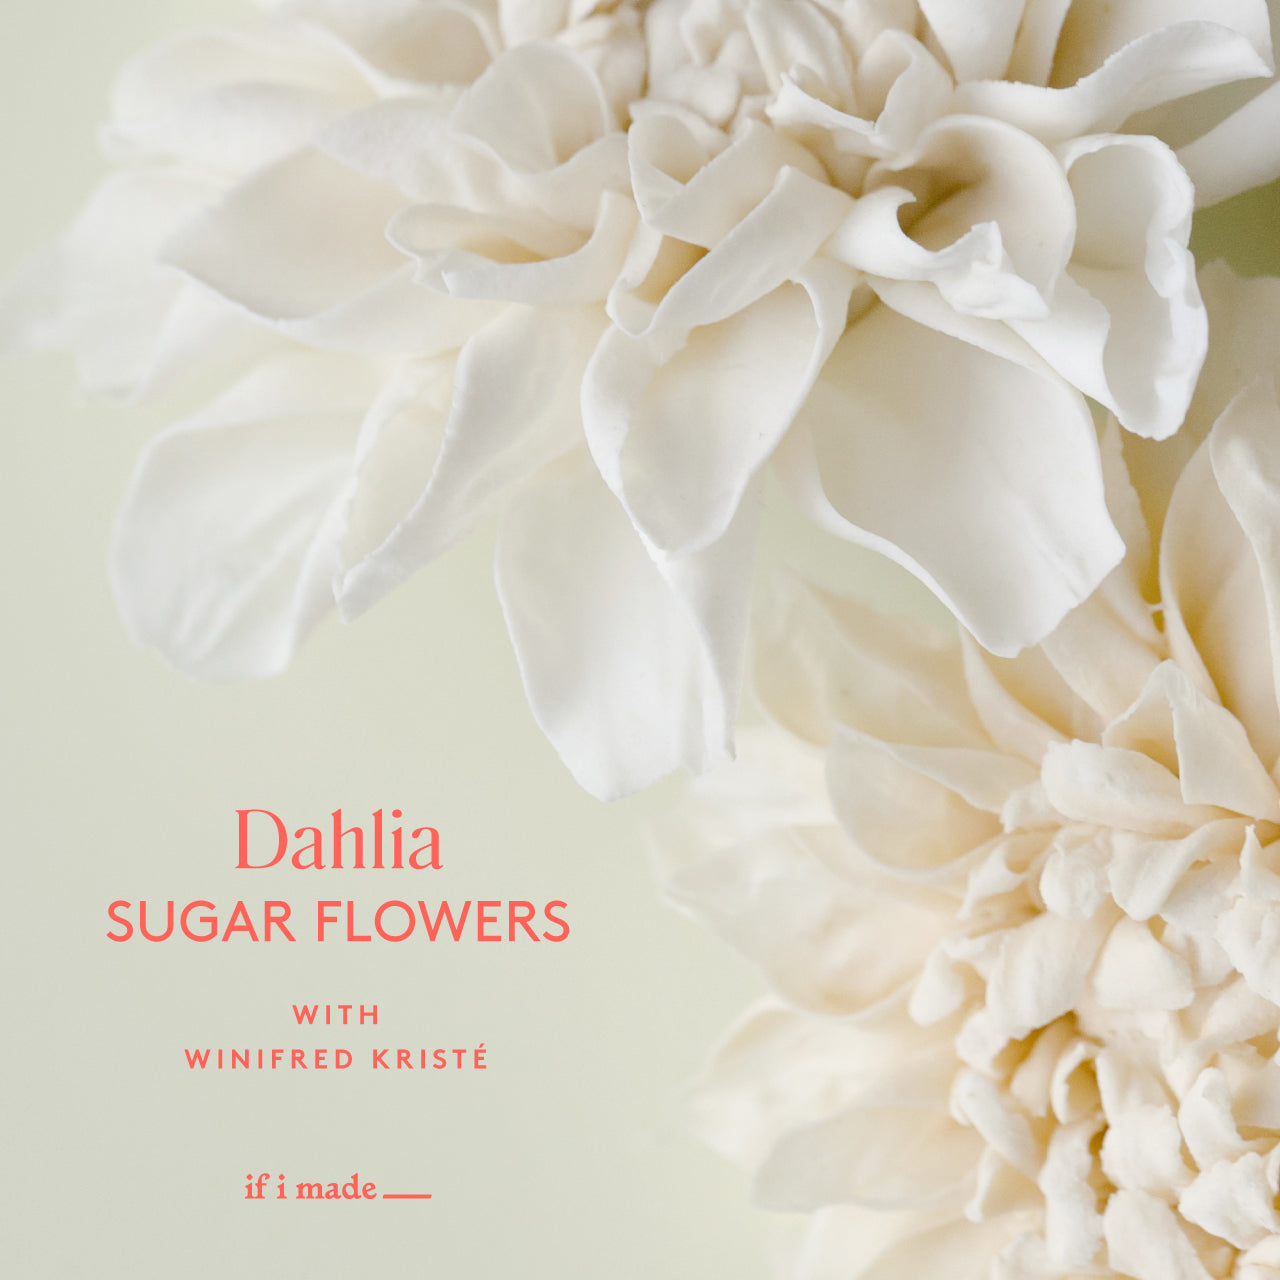 Dahlia Sugar Flower with Winifred Kriste (SPP0321) - 4 payments of $99